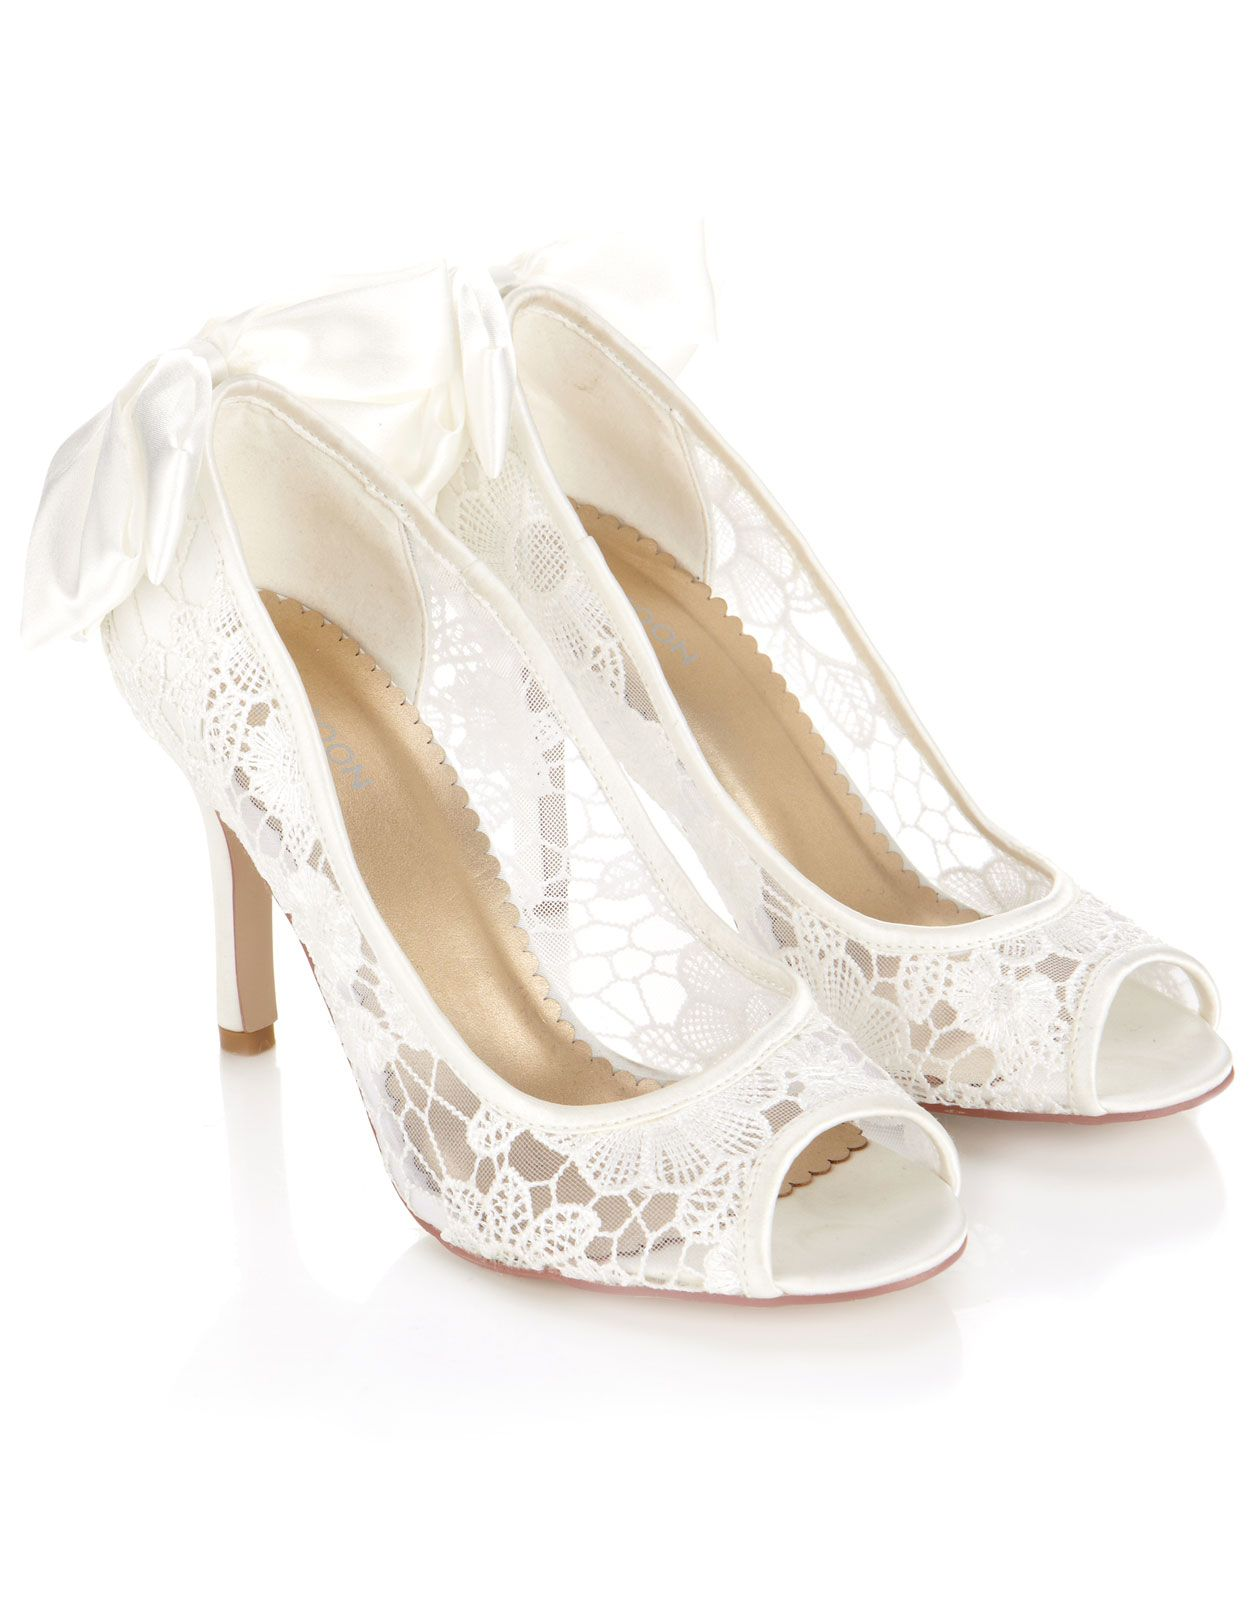 17 best images about Wedding Shoes on Pinterest | Lace shoes, Peep ...